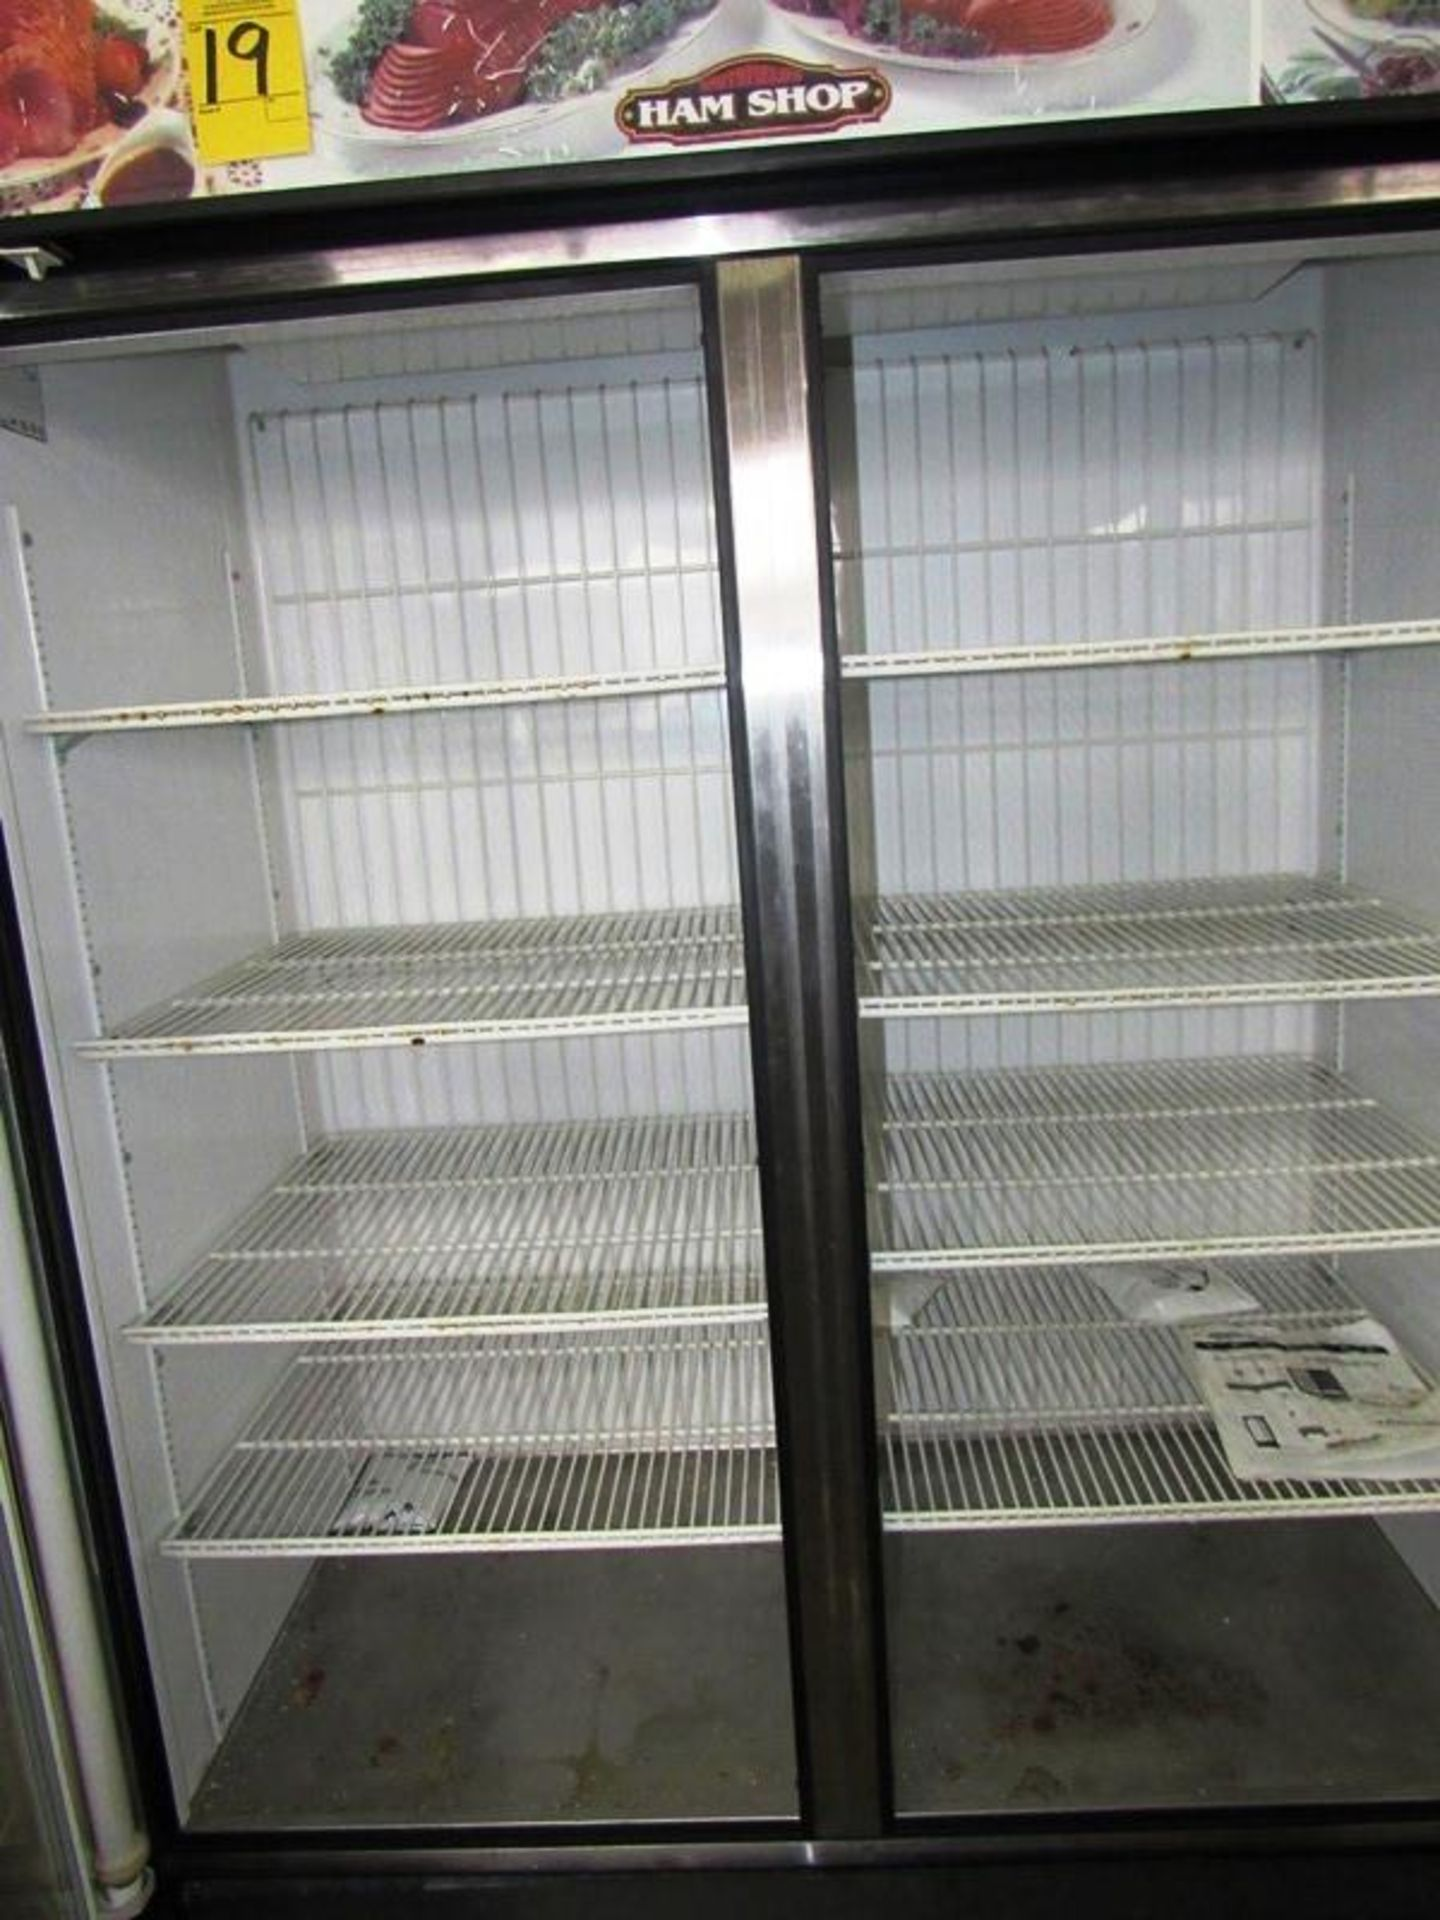 "True Mdl. GDM-49 Freezer, 49 cu. ft., double door, 8 shelves, 54 1/8"" L X 29 7/8"" D X 78 5/8"" T, 1/2 - Image 2 of 3"